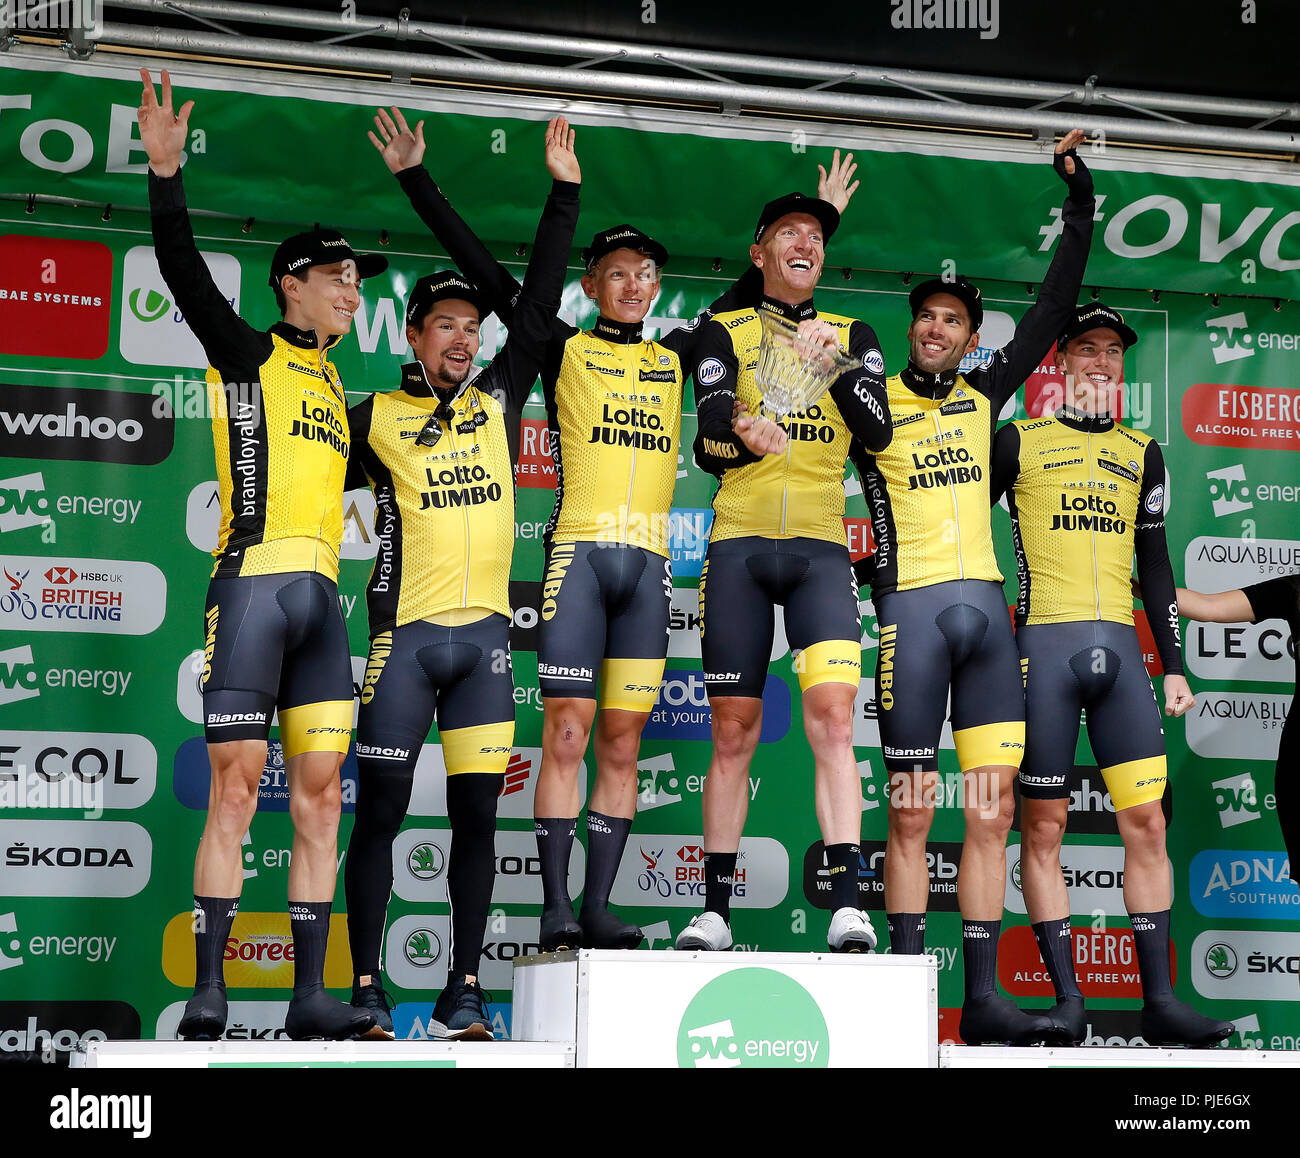 d032ebcf5 Primoz Roglic (2nd left) with his Team LottoNL-Jumbo